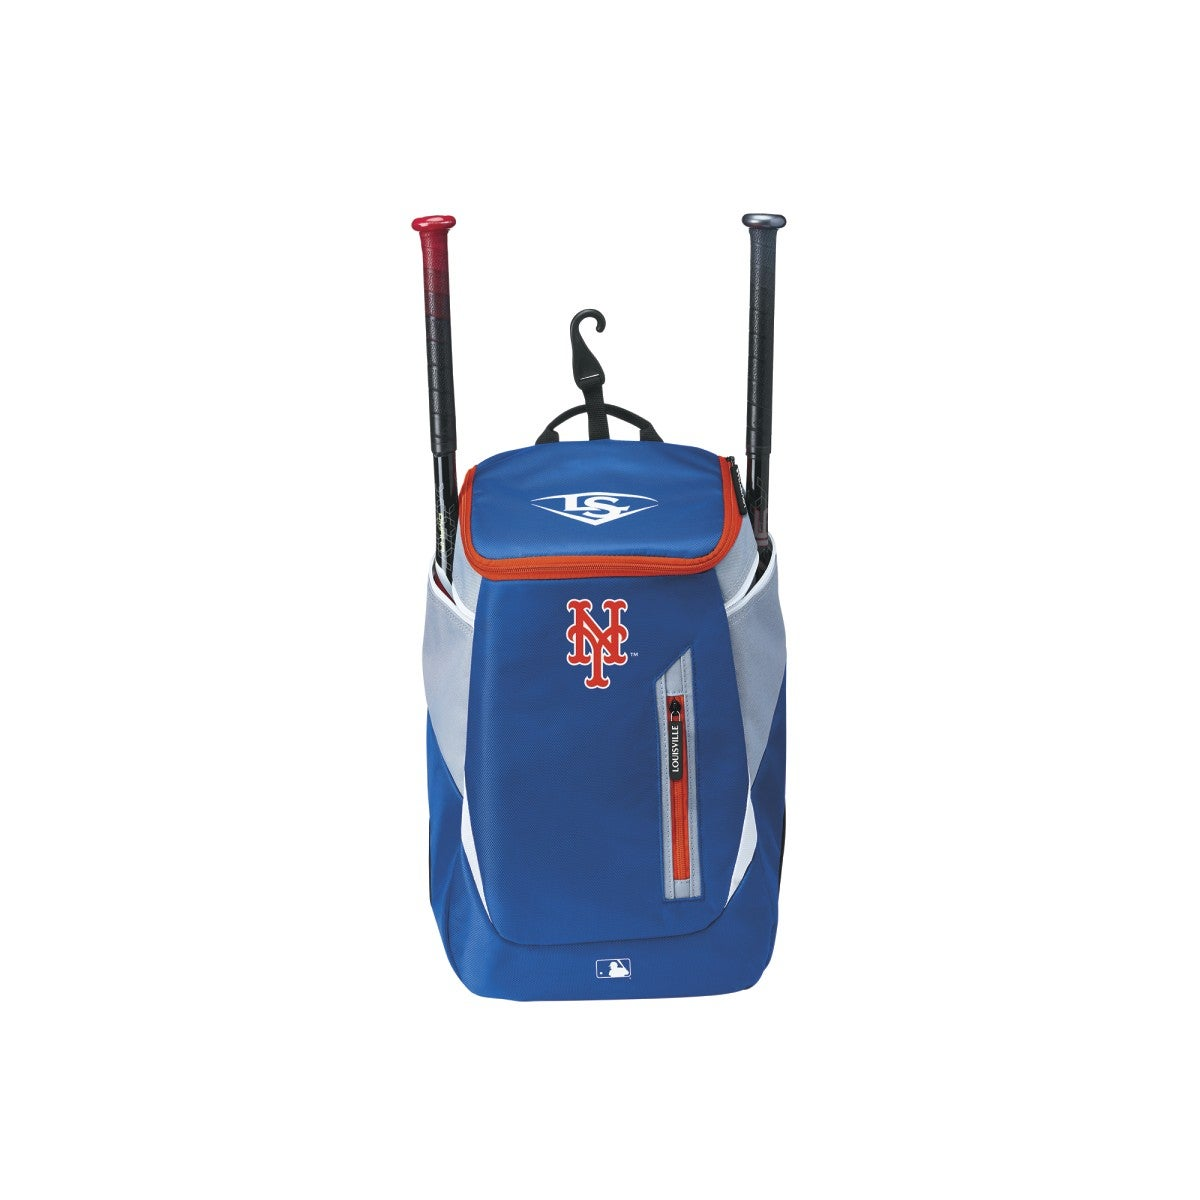 Genuine MLB Bag - New York Mets